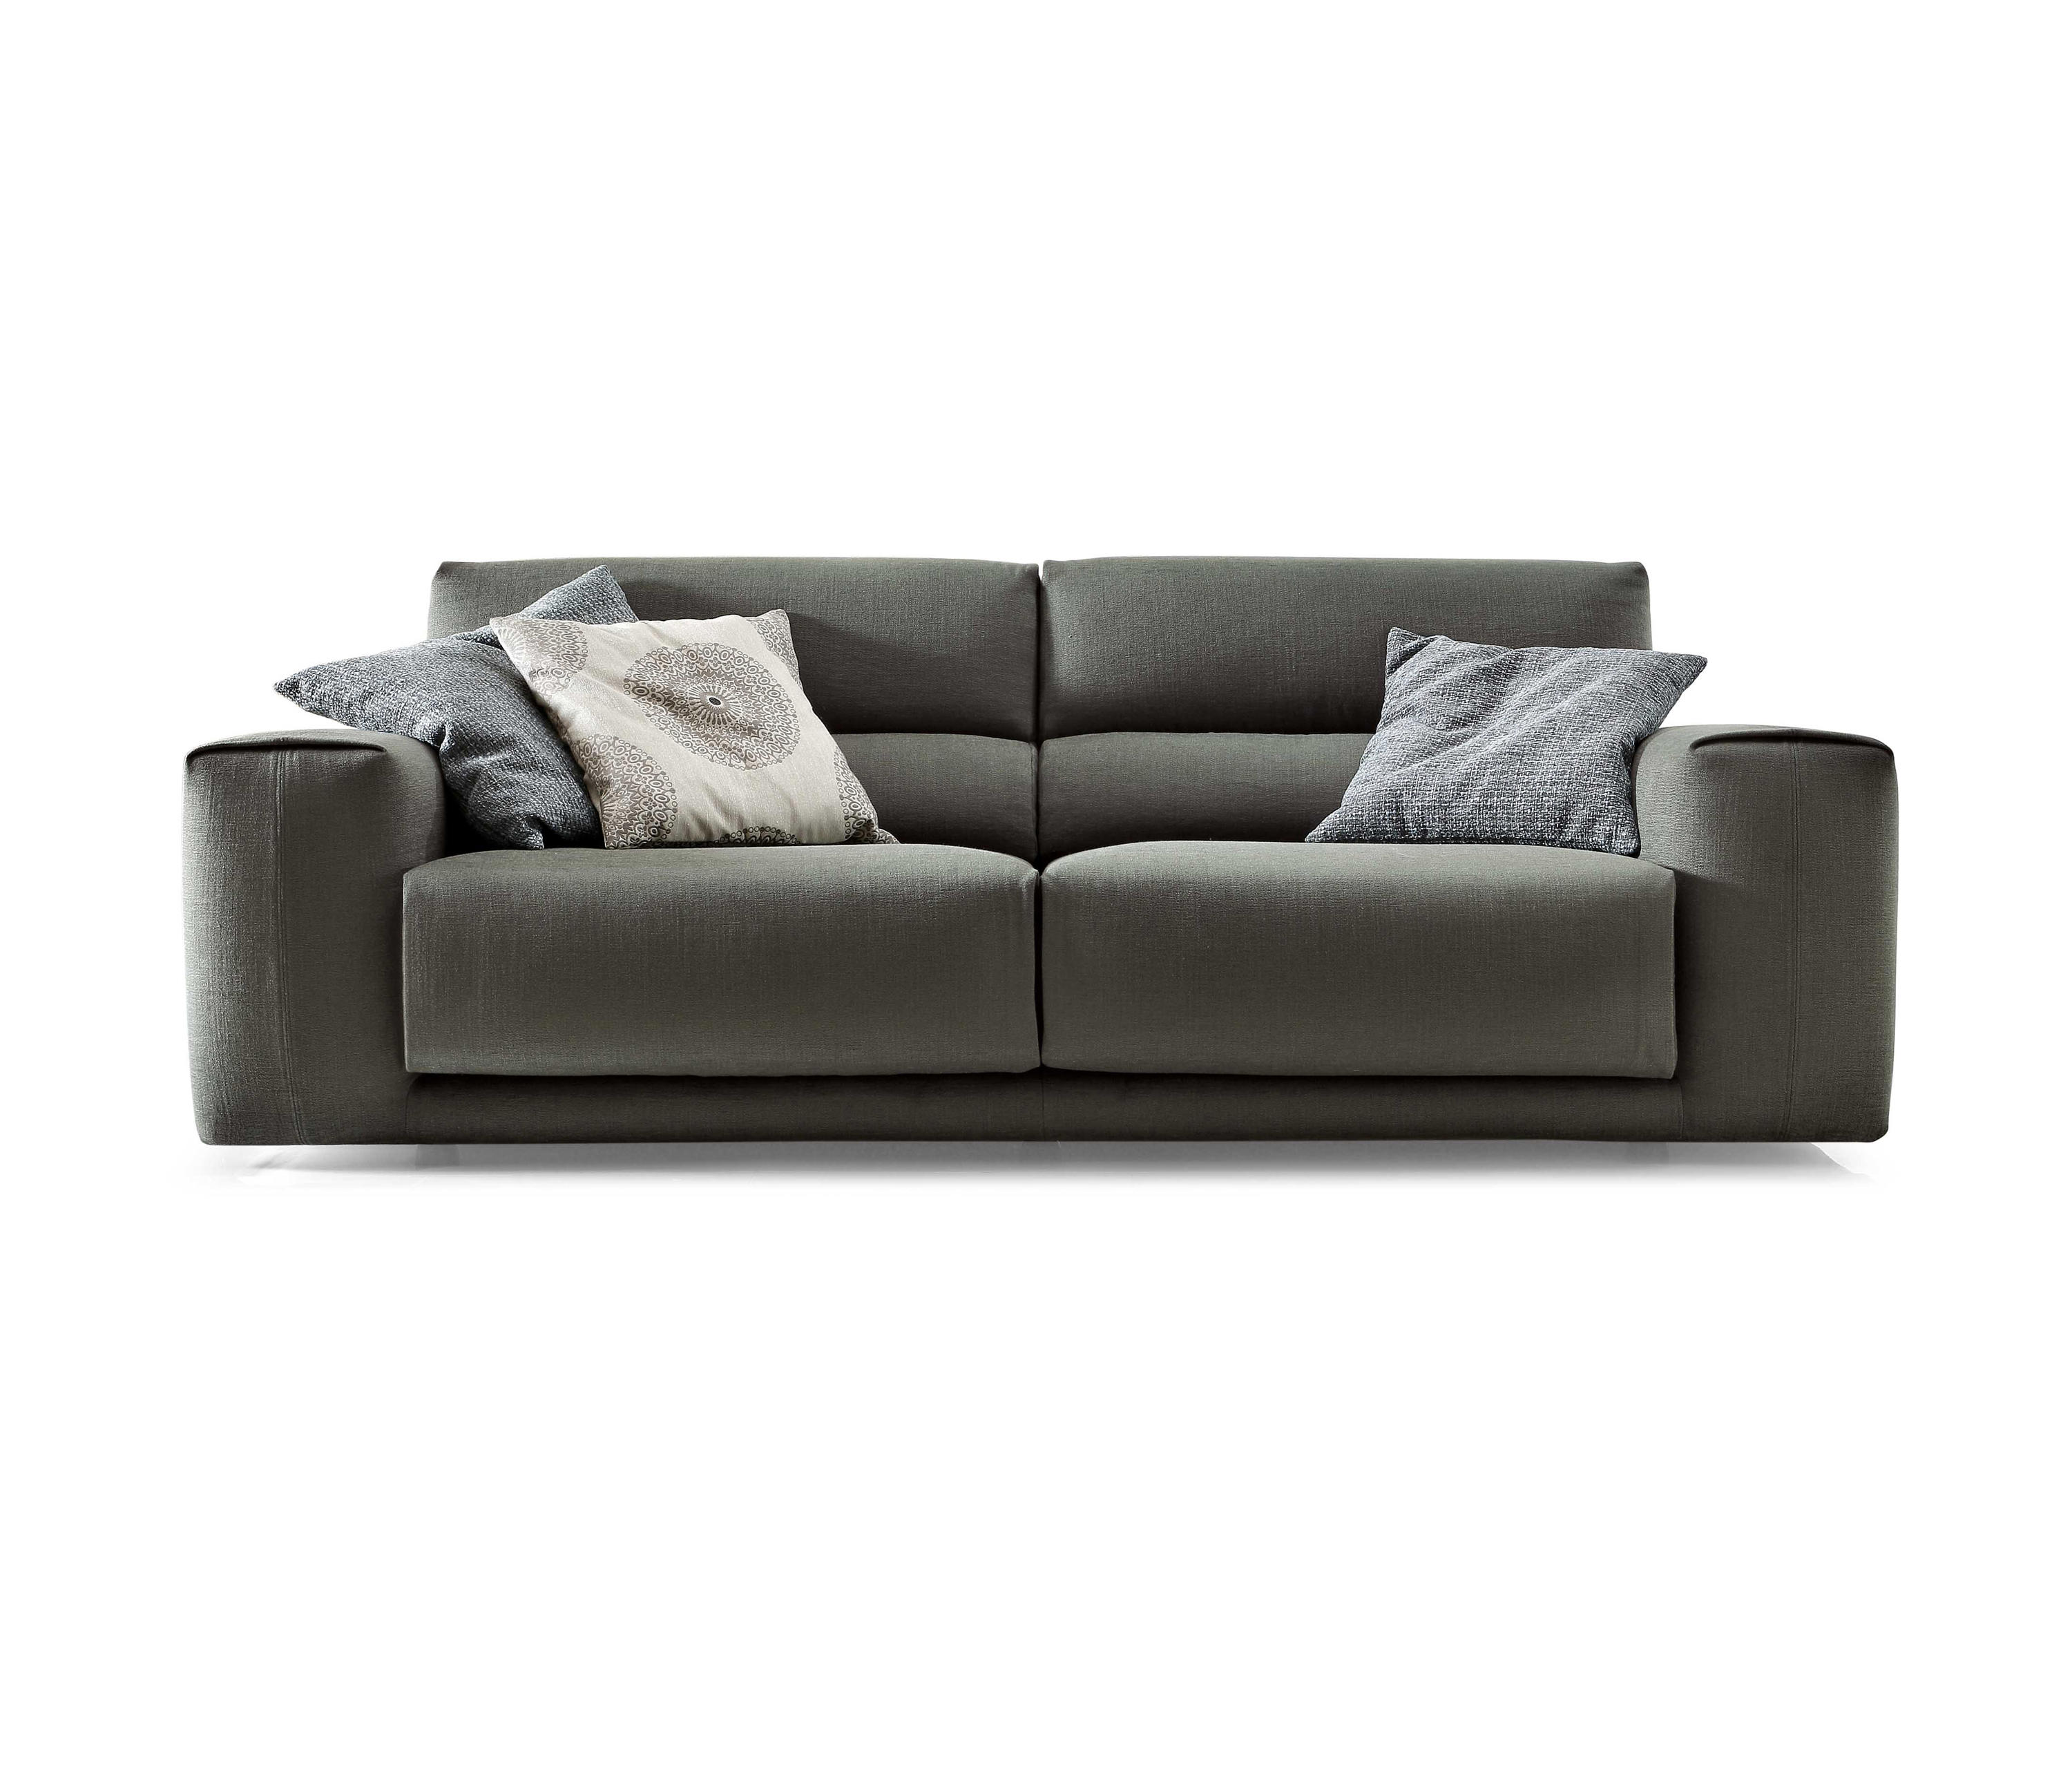 BOOMAN - Lounge sofas from DITRE ITALIA | Architonic